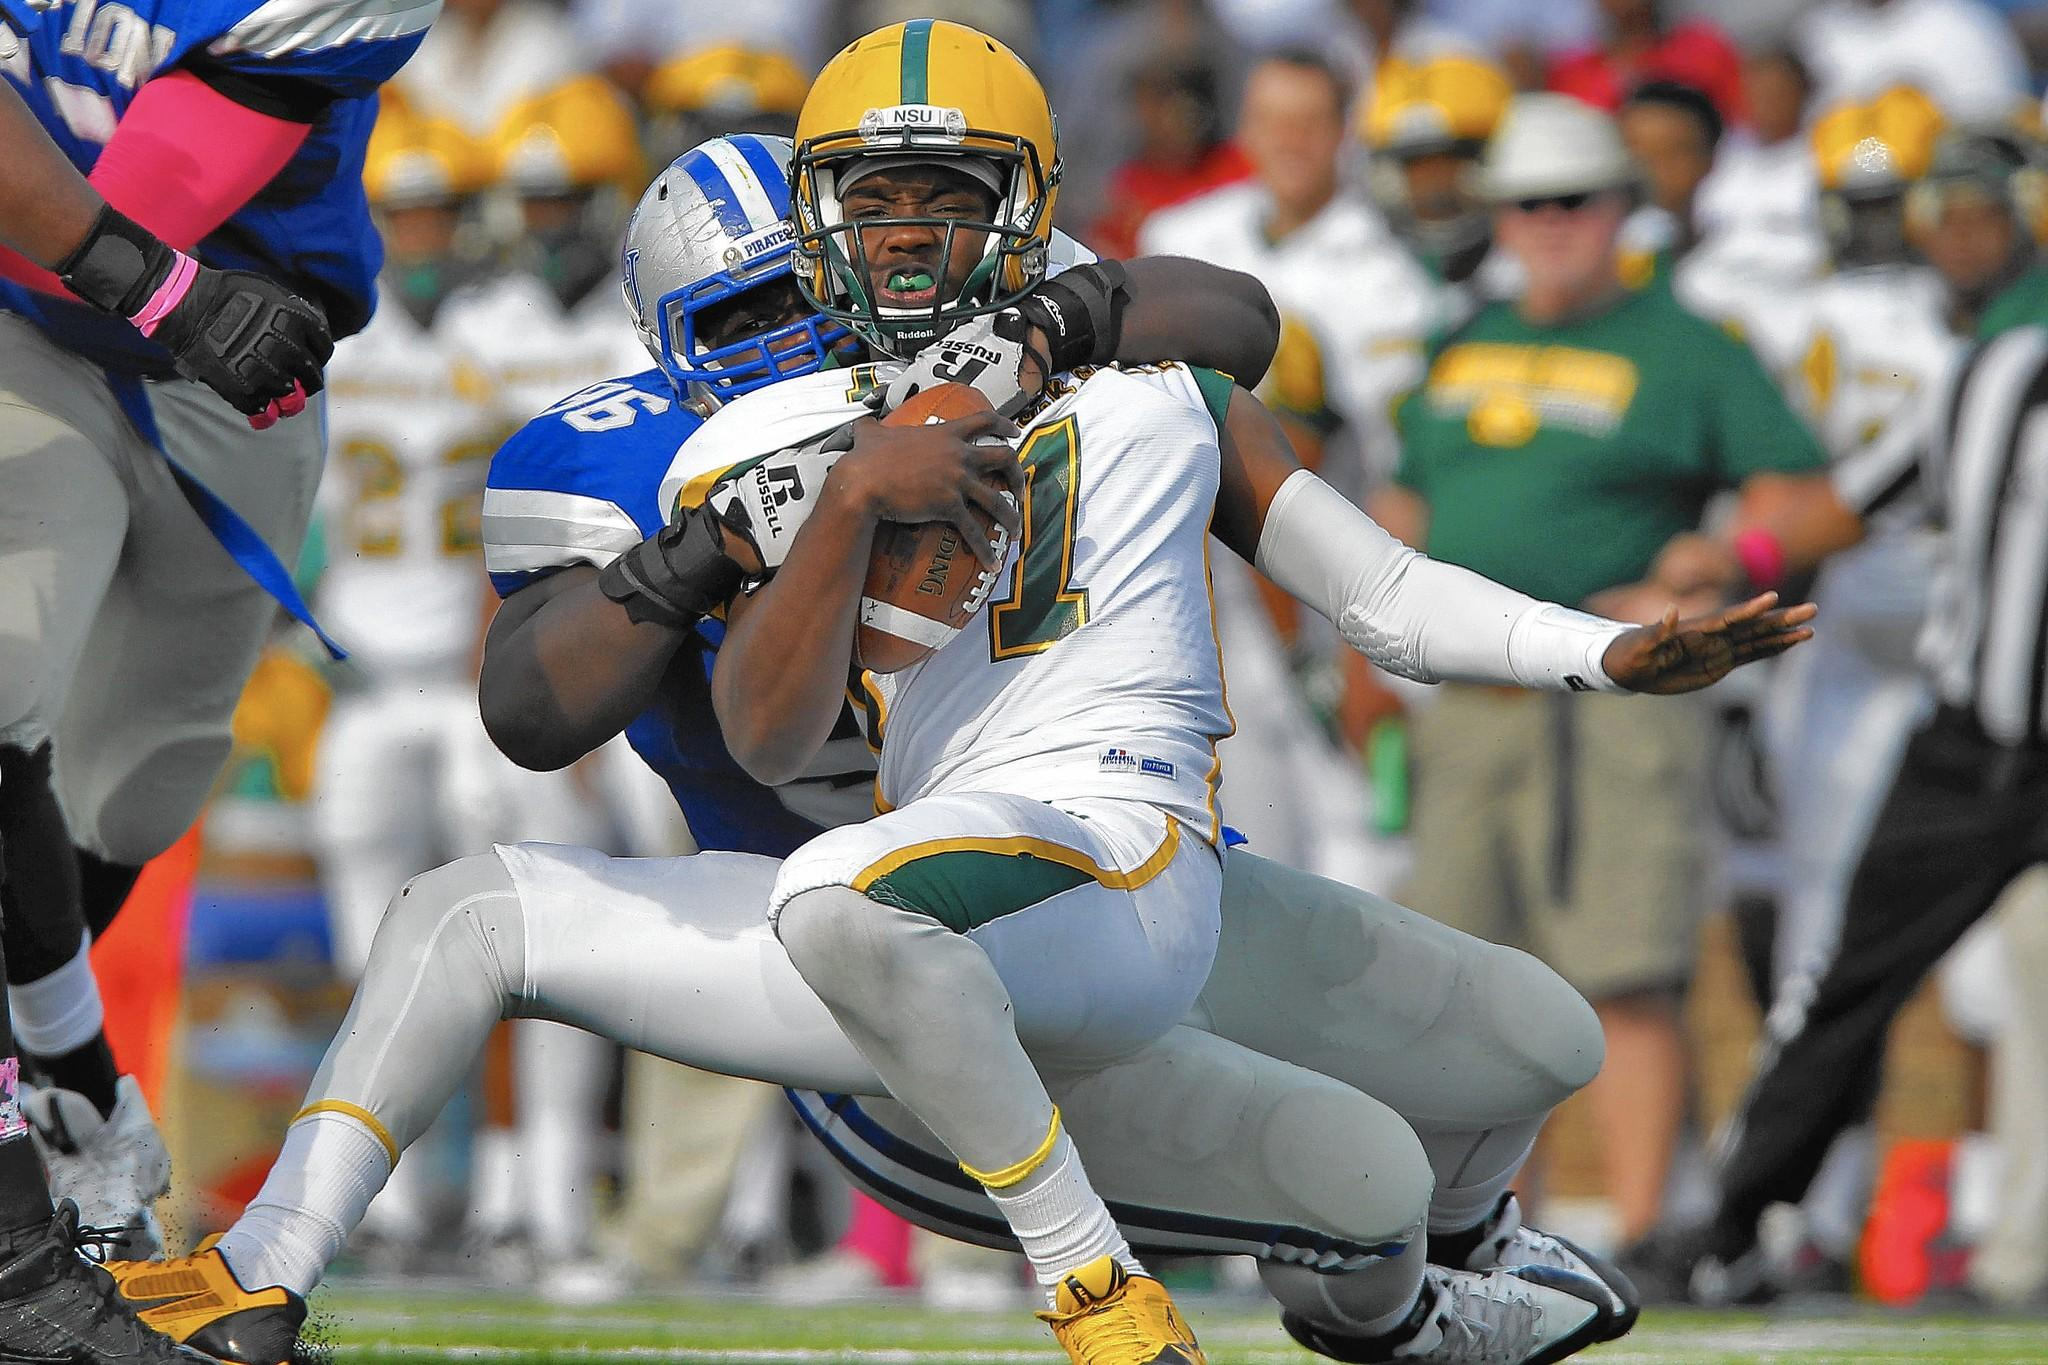 Hampton's Charles Owens, left, sacks Norfolk State quarterback Terrance Ervin during Saturday's game at Armstrong Stadium.